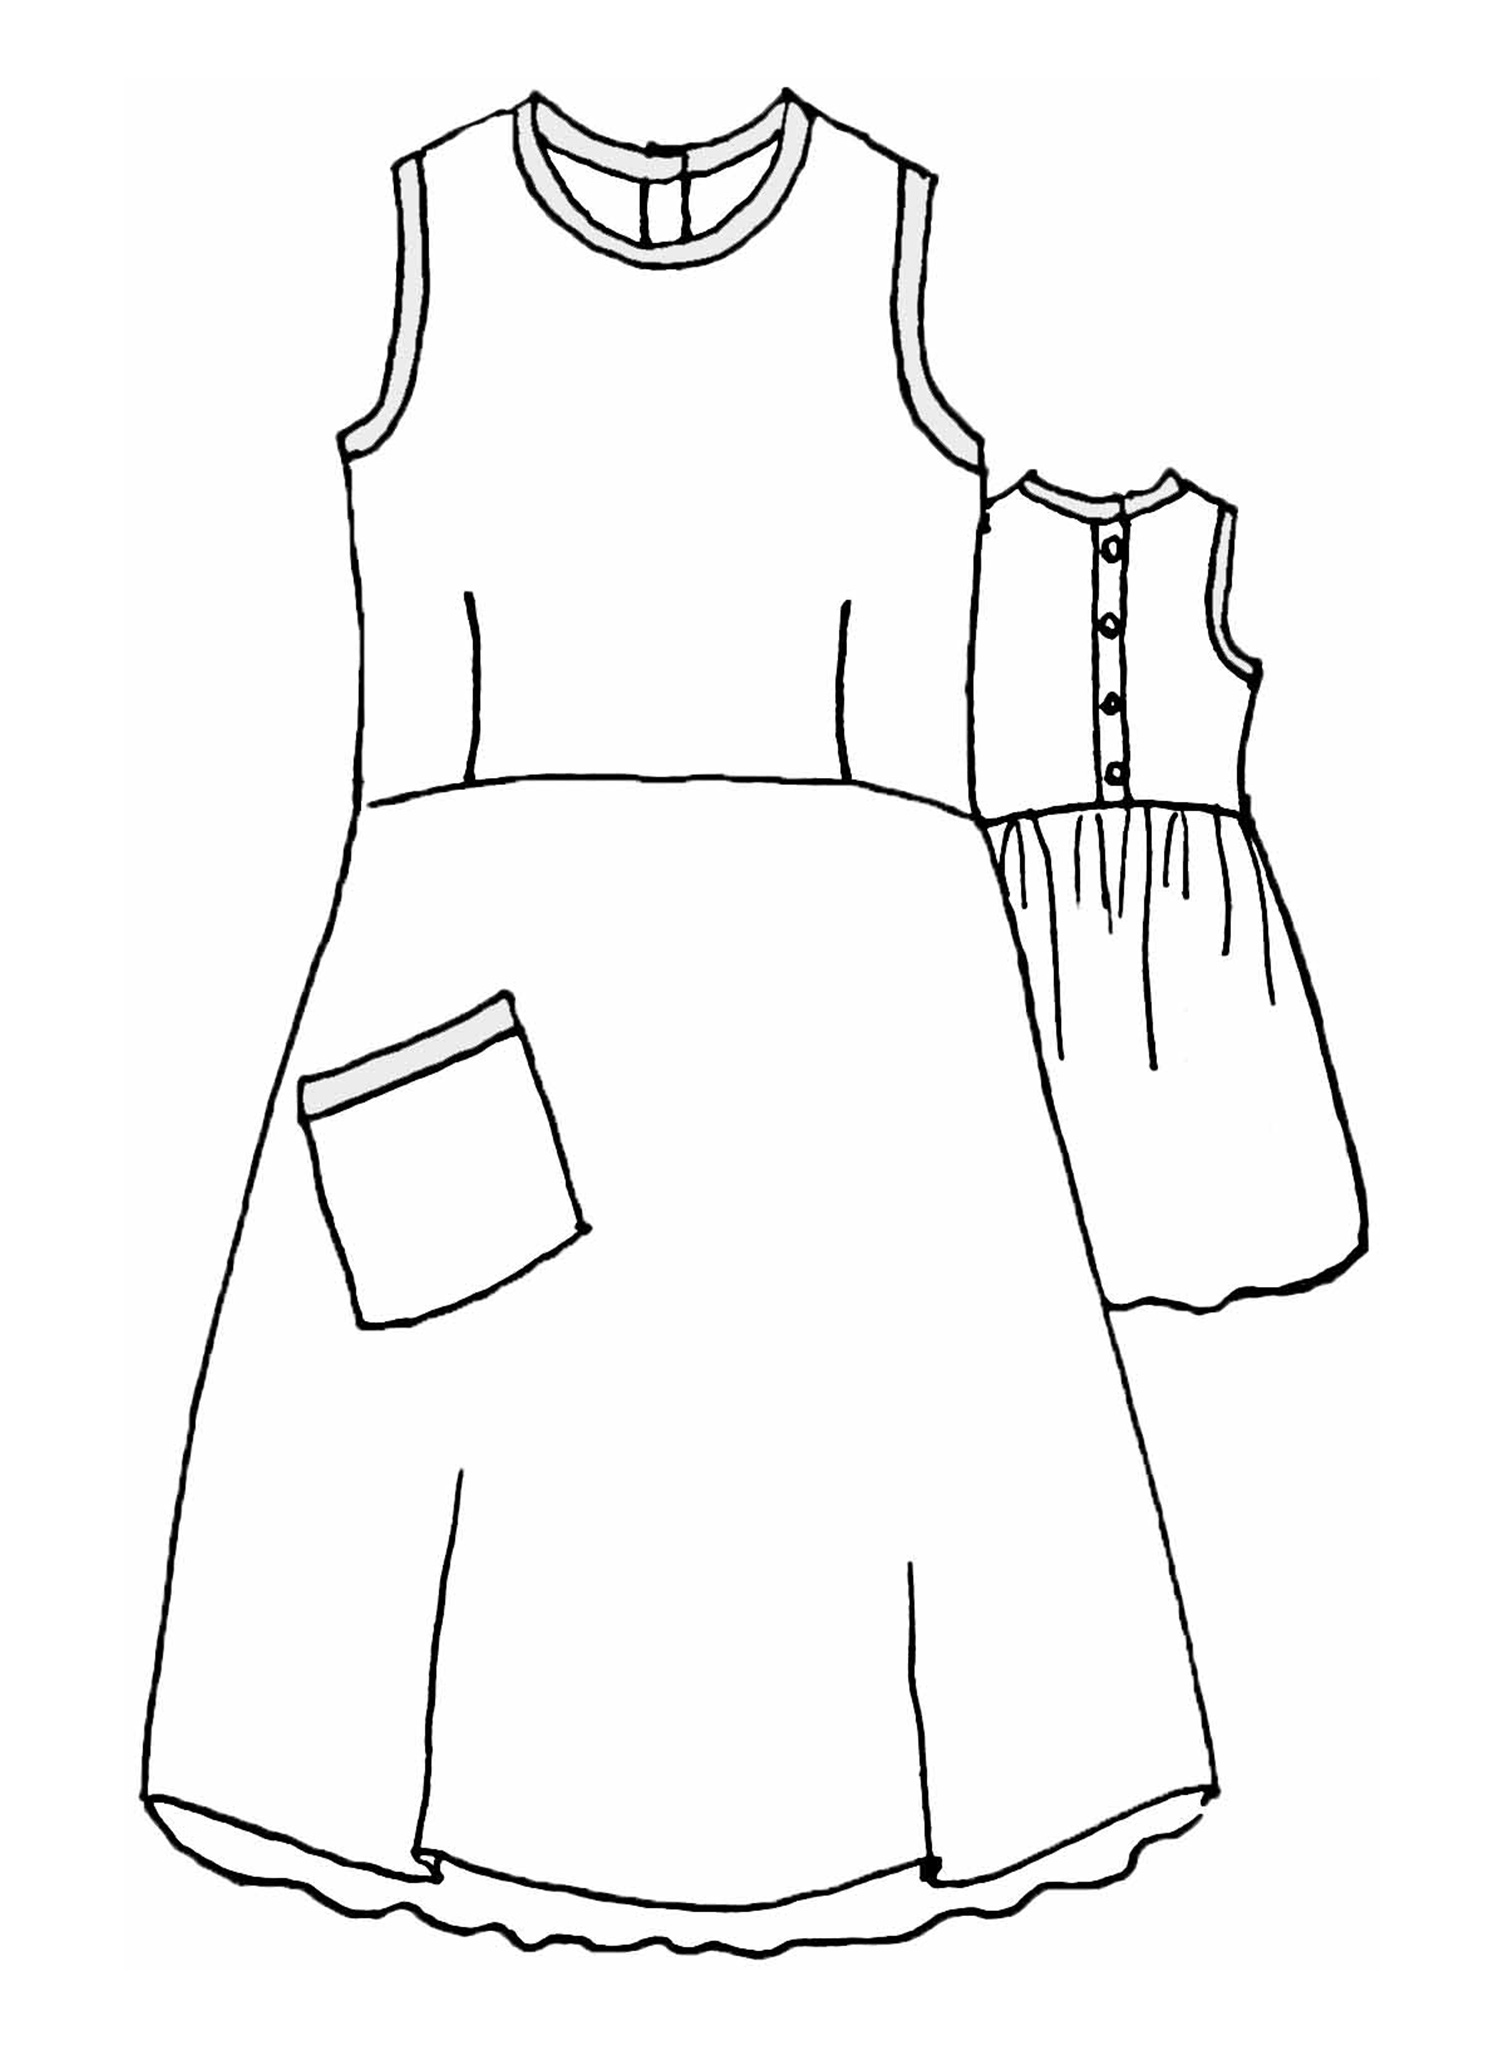 Work/Play Dress sketch image